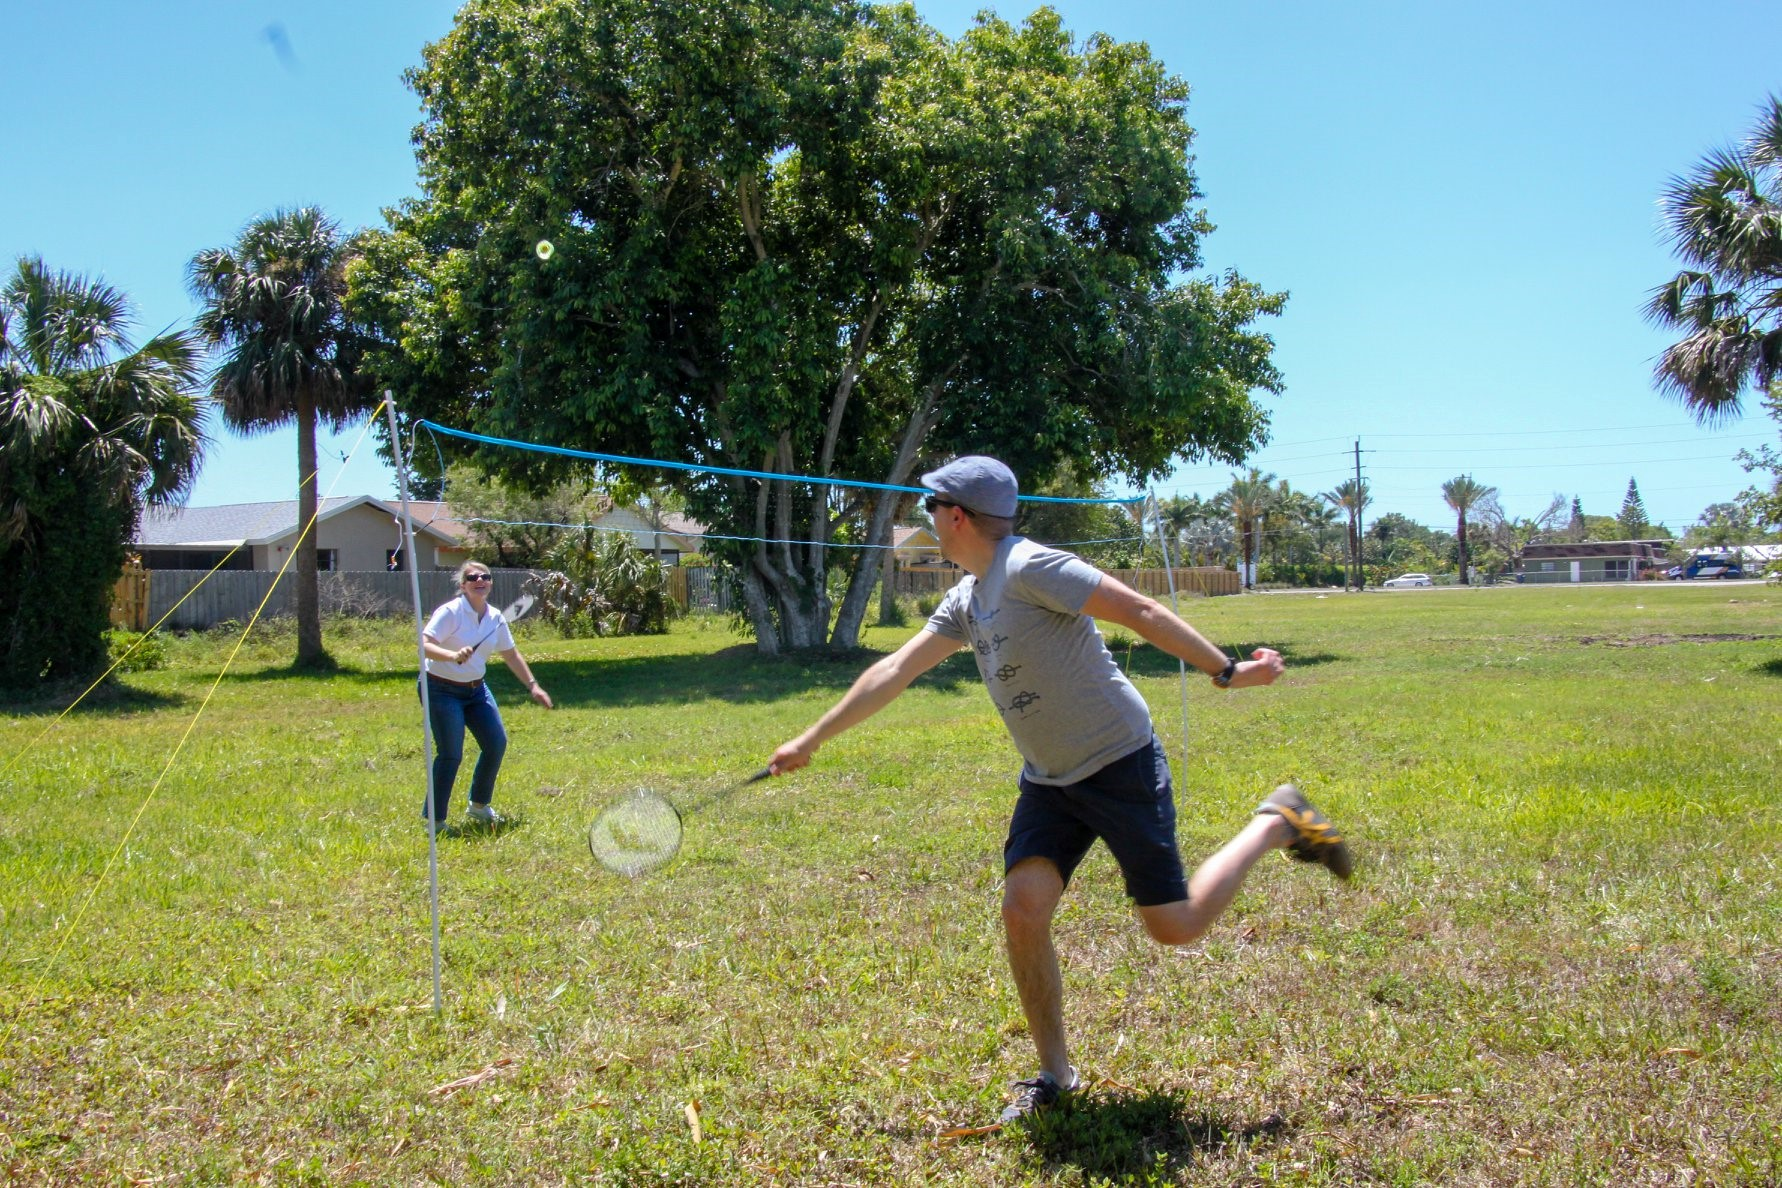 employees having fun outside for company field day